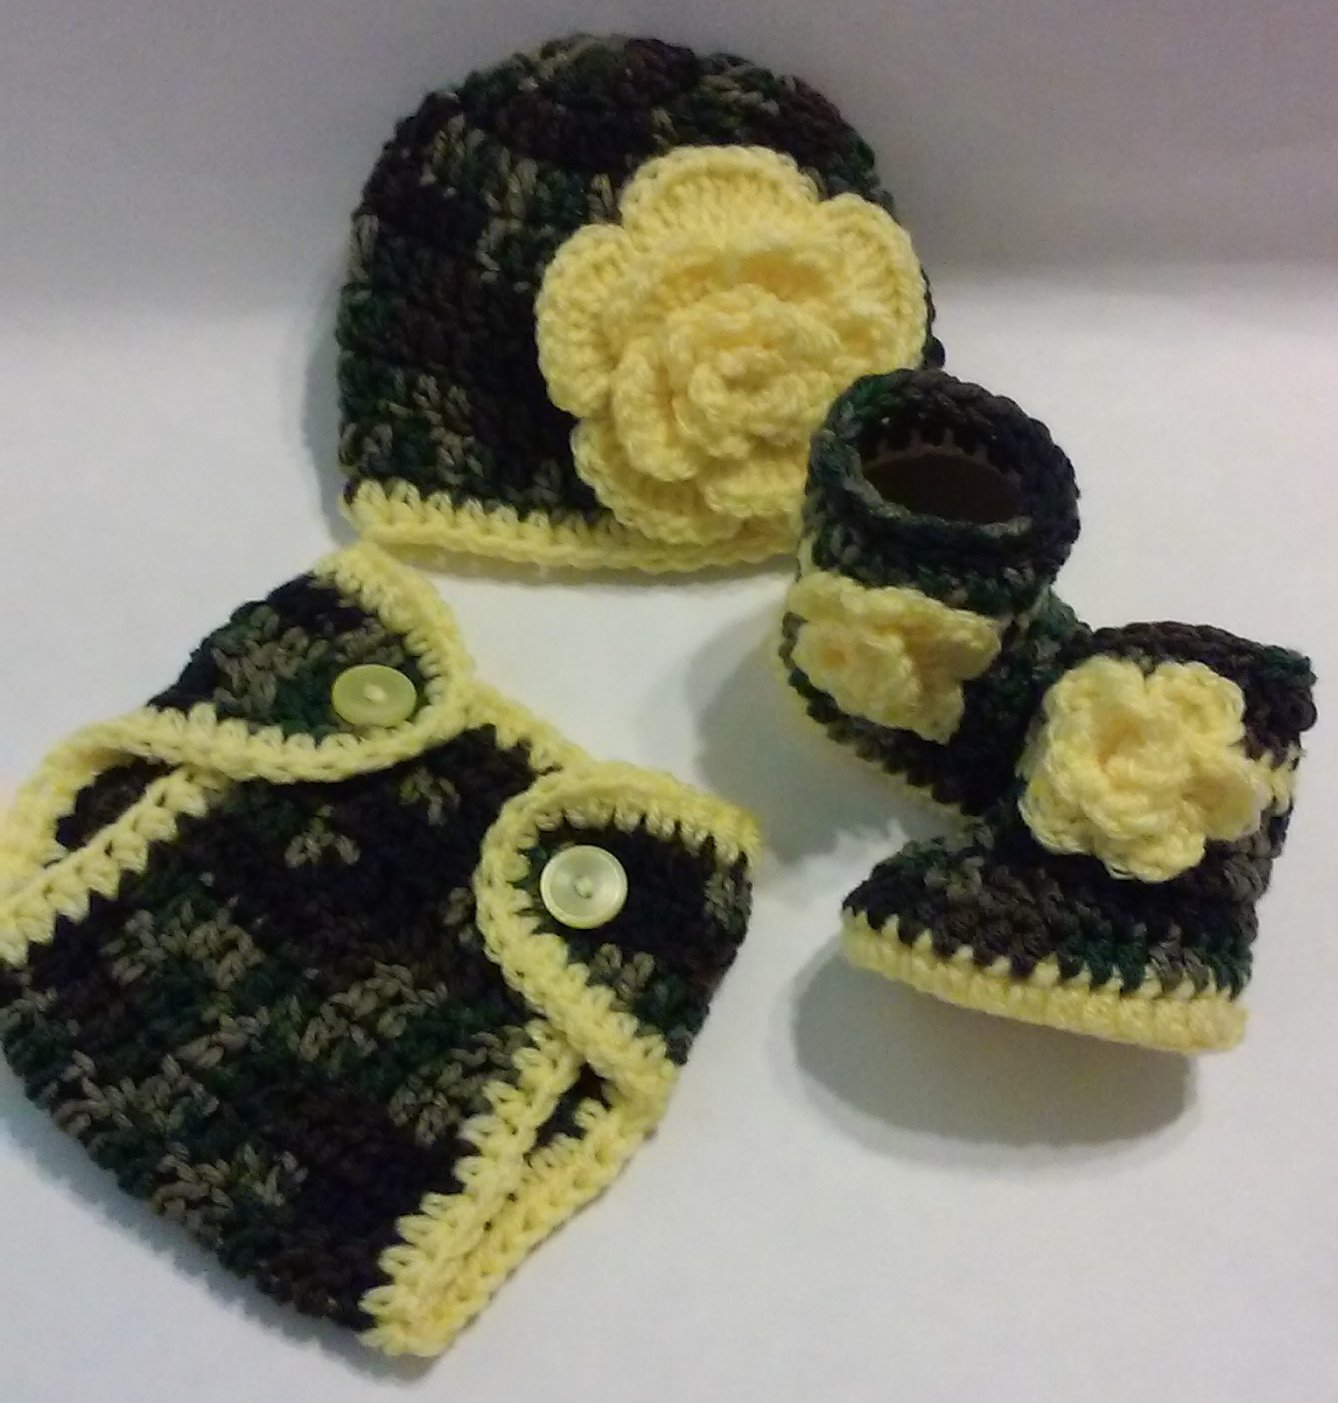 Crochet Dark Camo and Floral Diaper Cover Set in Bright Yellow with Hat, Booties Newborn 0-3 Months